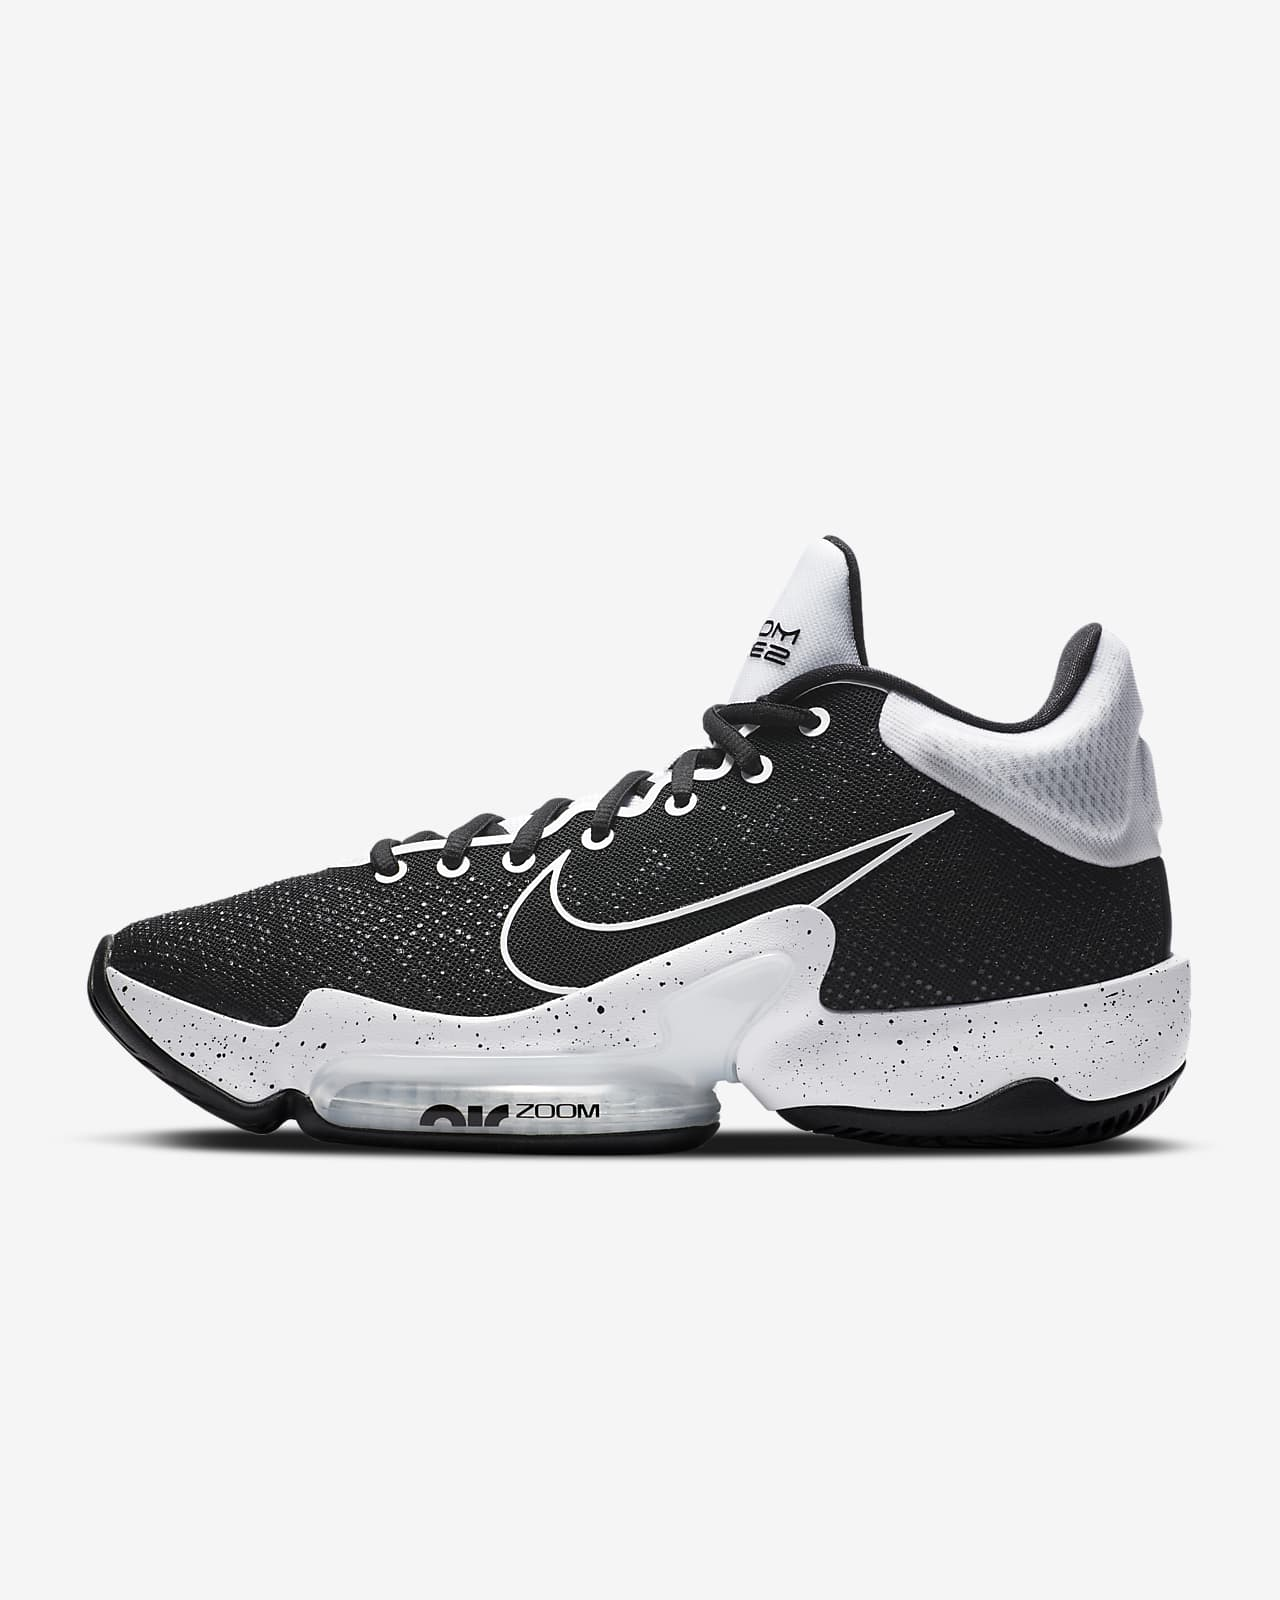 Nike Zoom Rize 2 (Team) Basketball Shoe